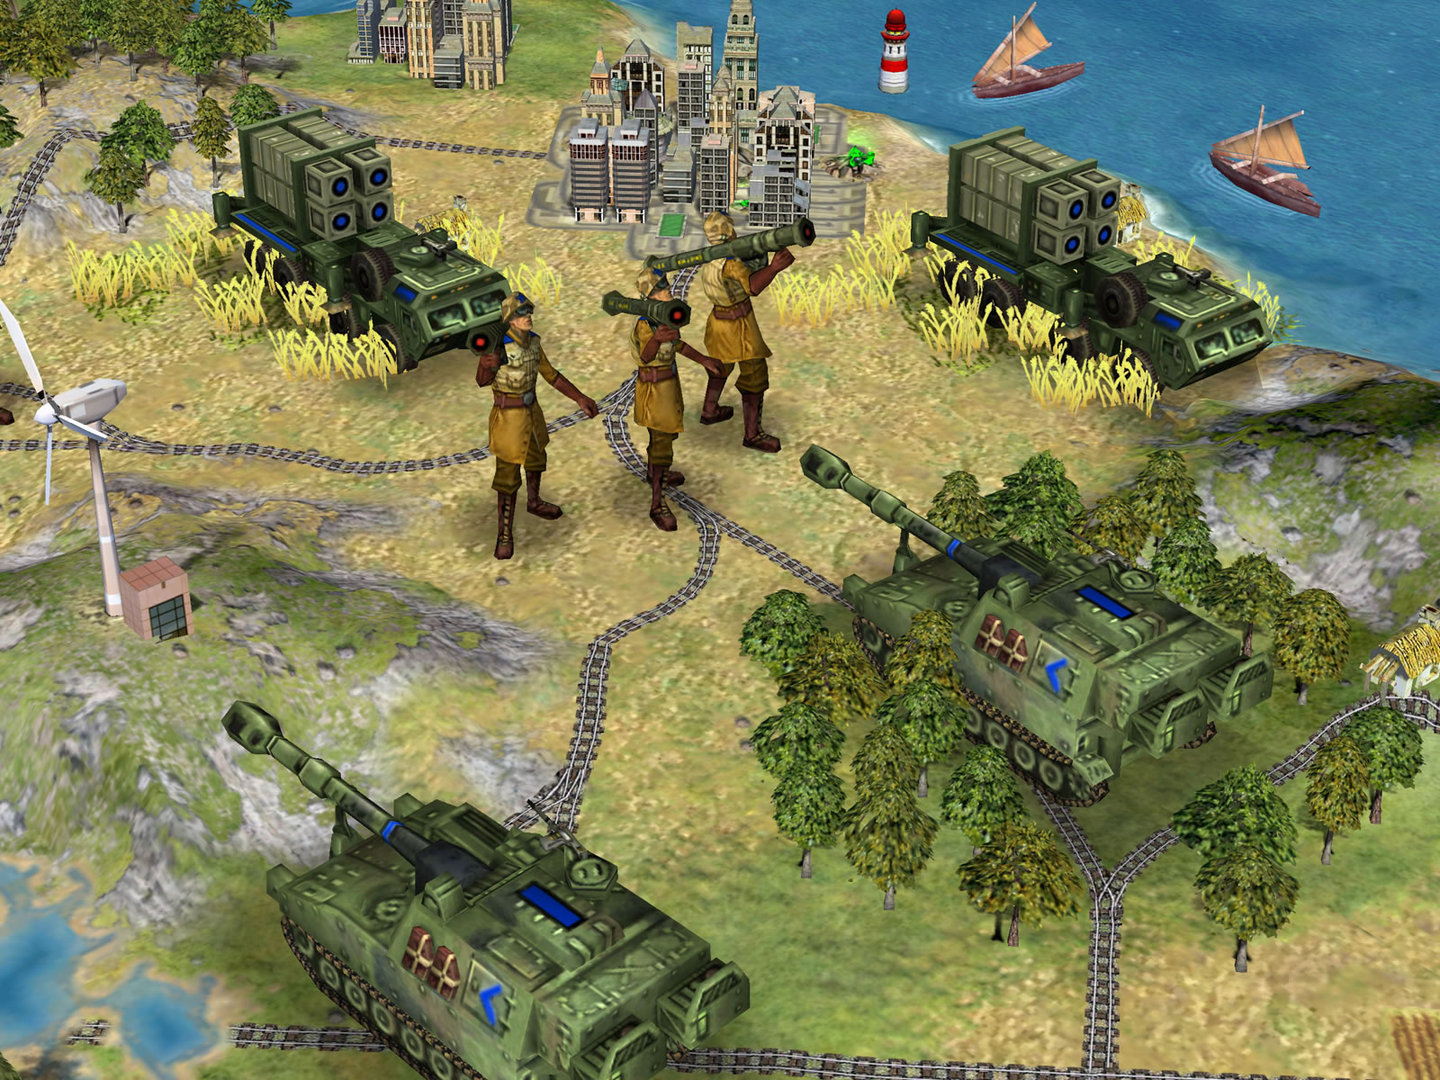 Download Civilization IV: Beyond The Sword Full PC Game